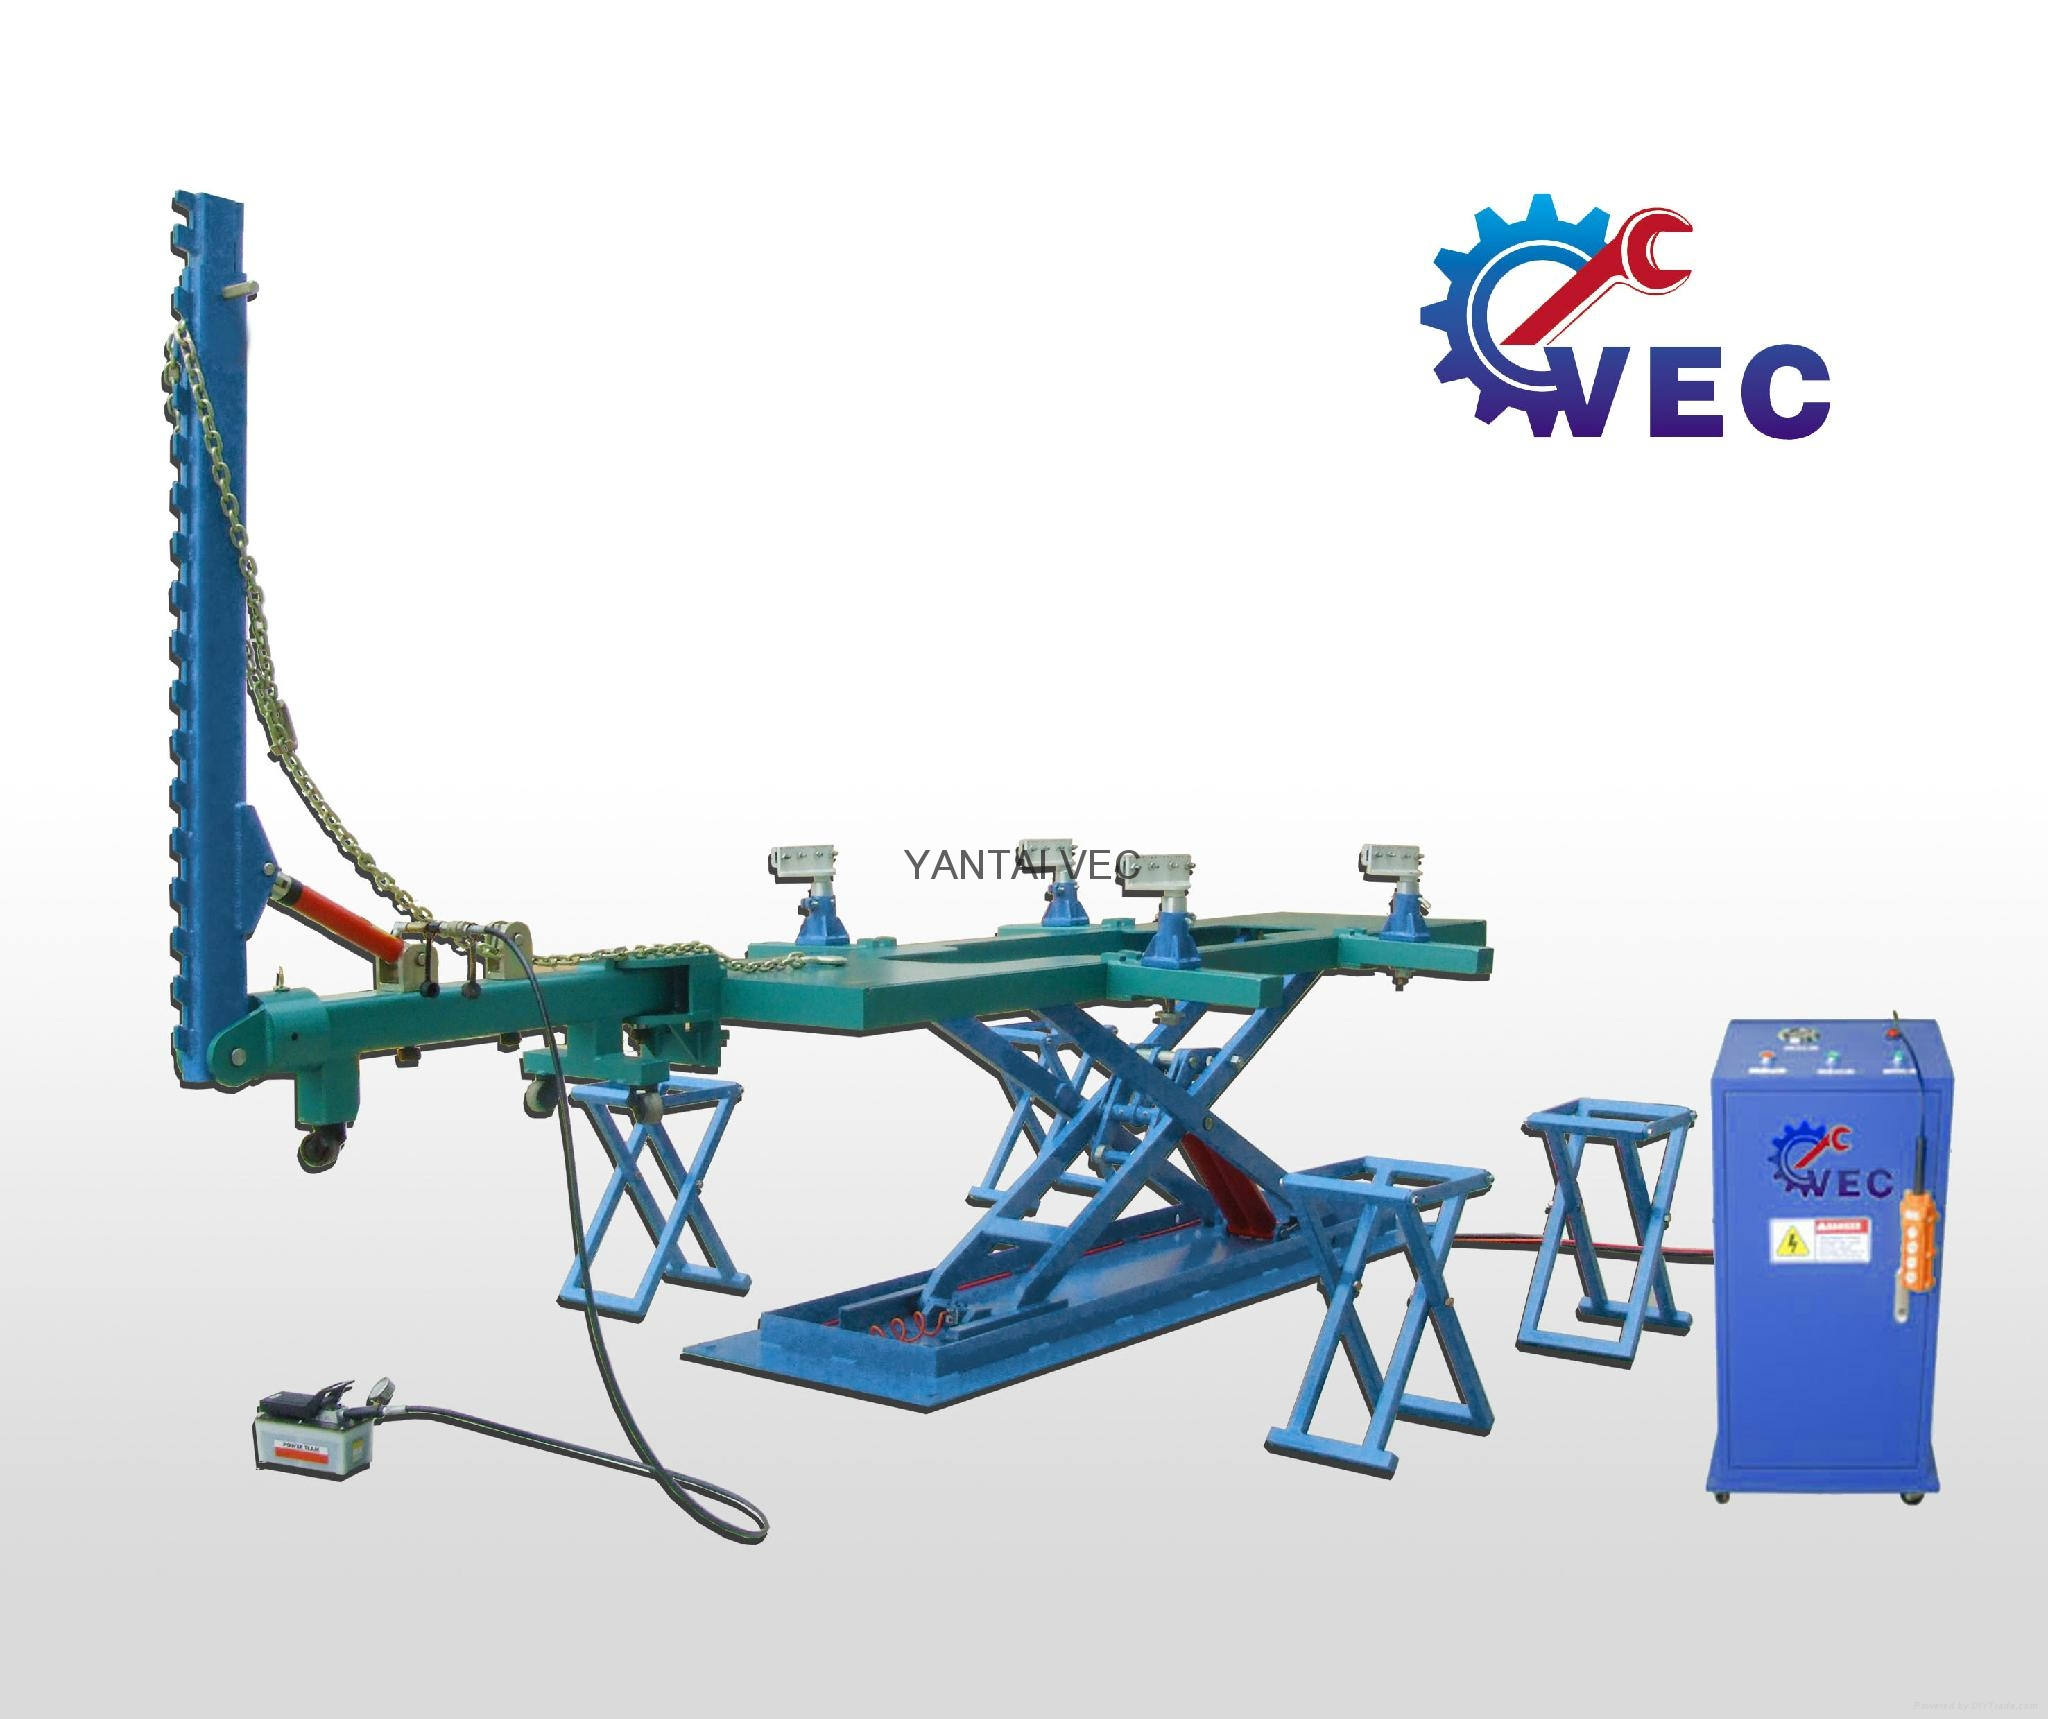 Factory Auto Body Collision Repair Frame Machine with CE - V-8 - VEC ...